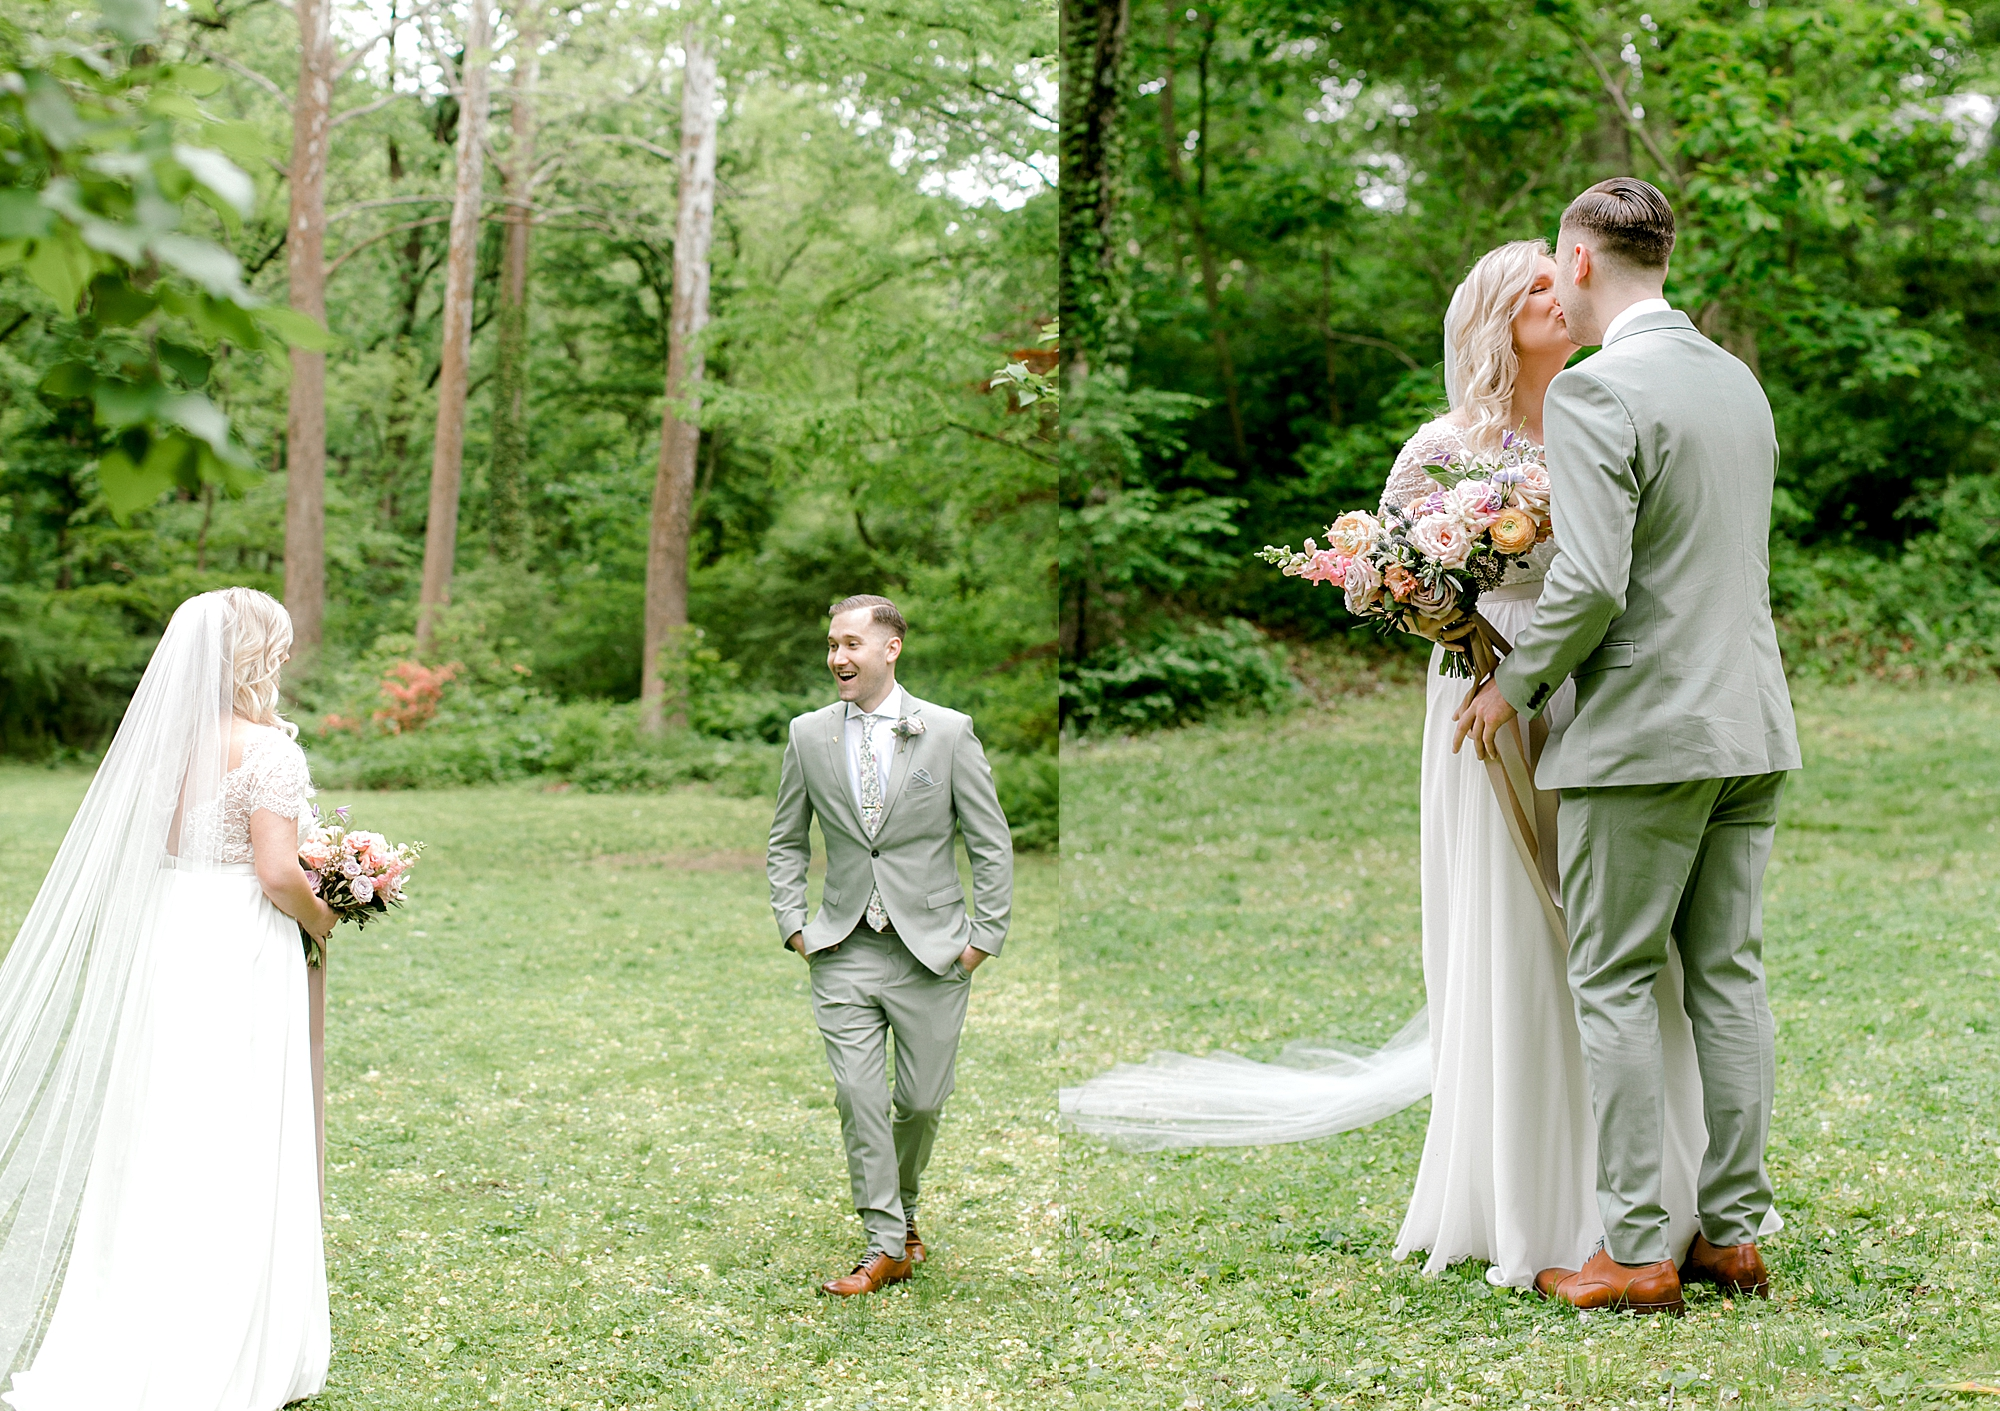 Intimate and Sweet Estate Wedding Photography by Magdalena Studios 0016